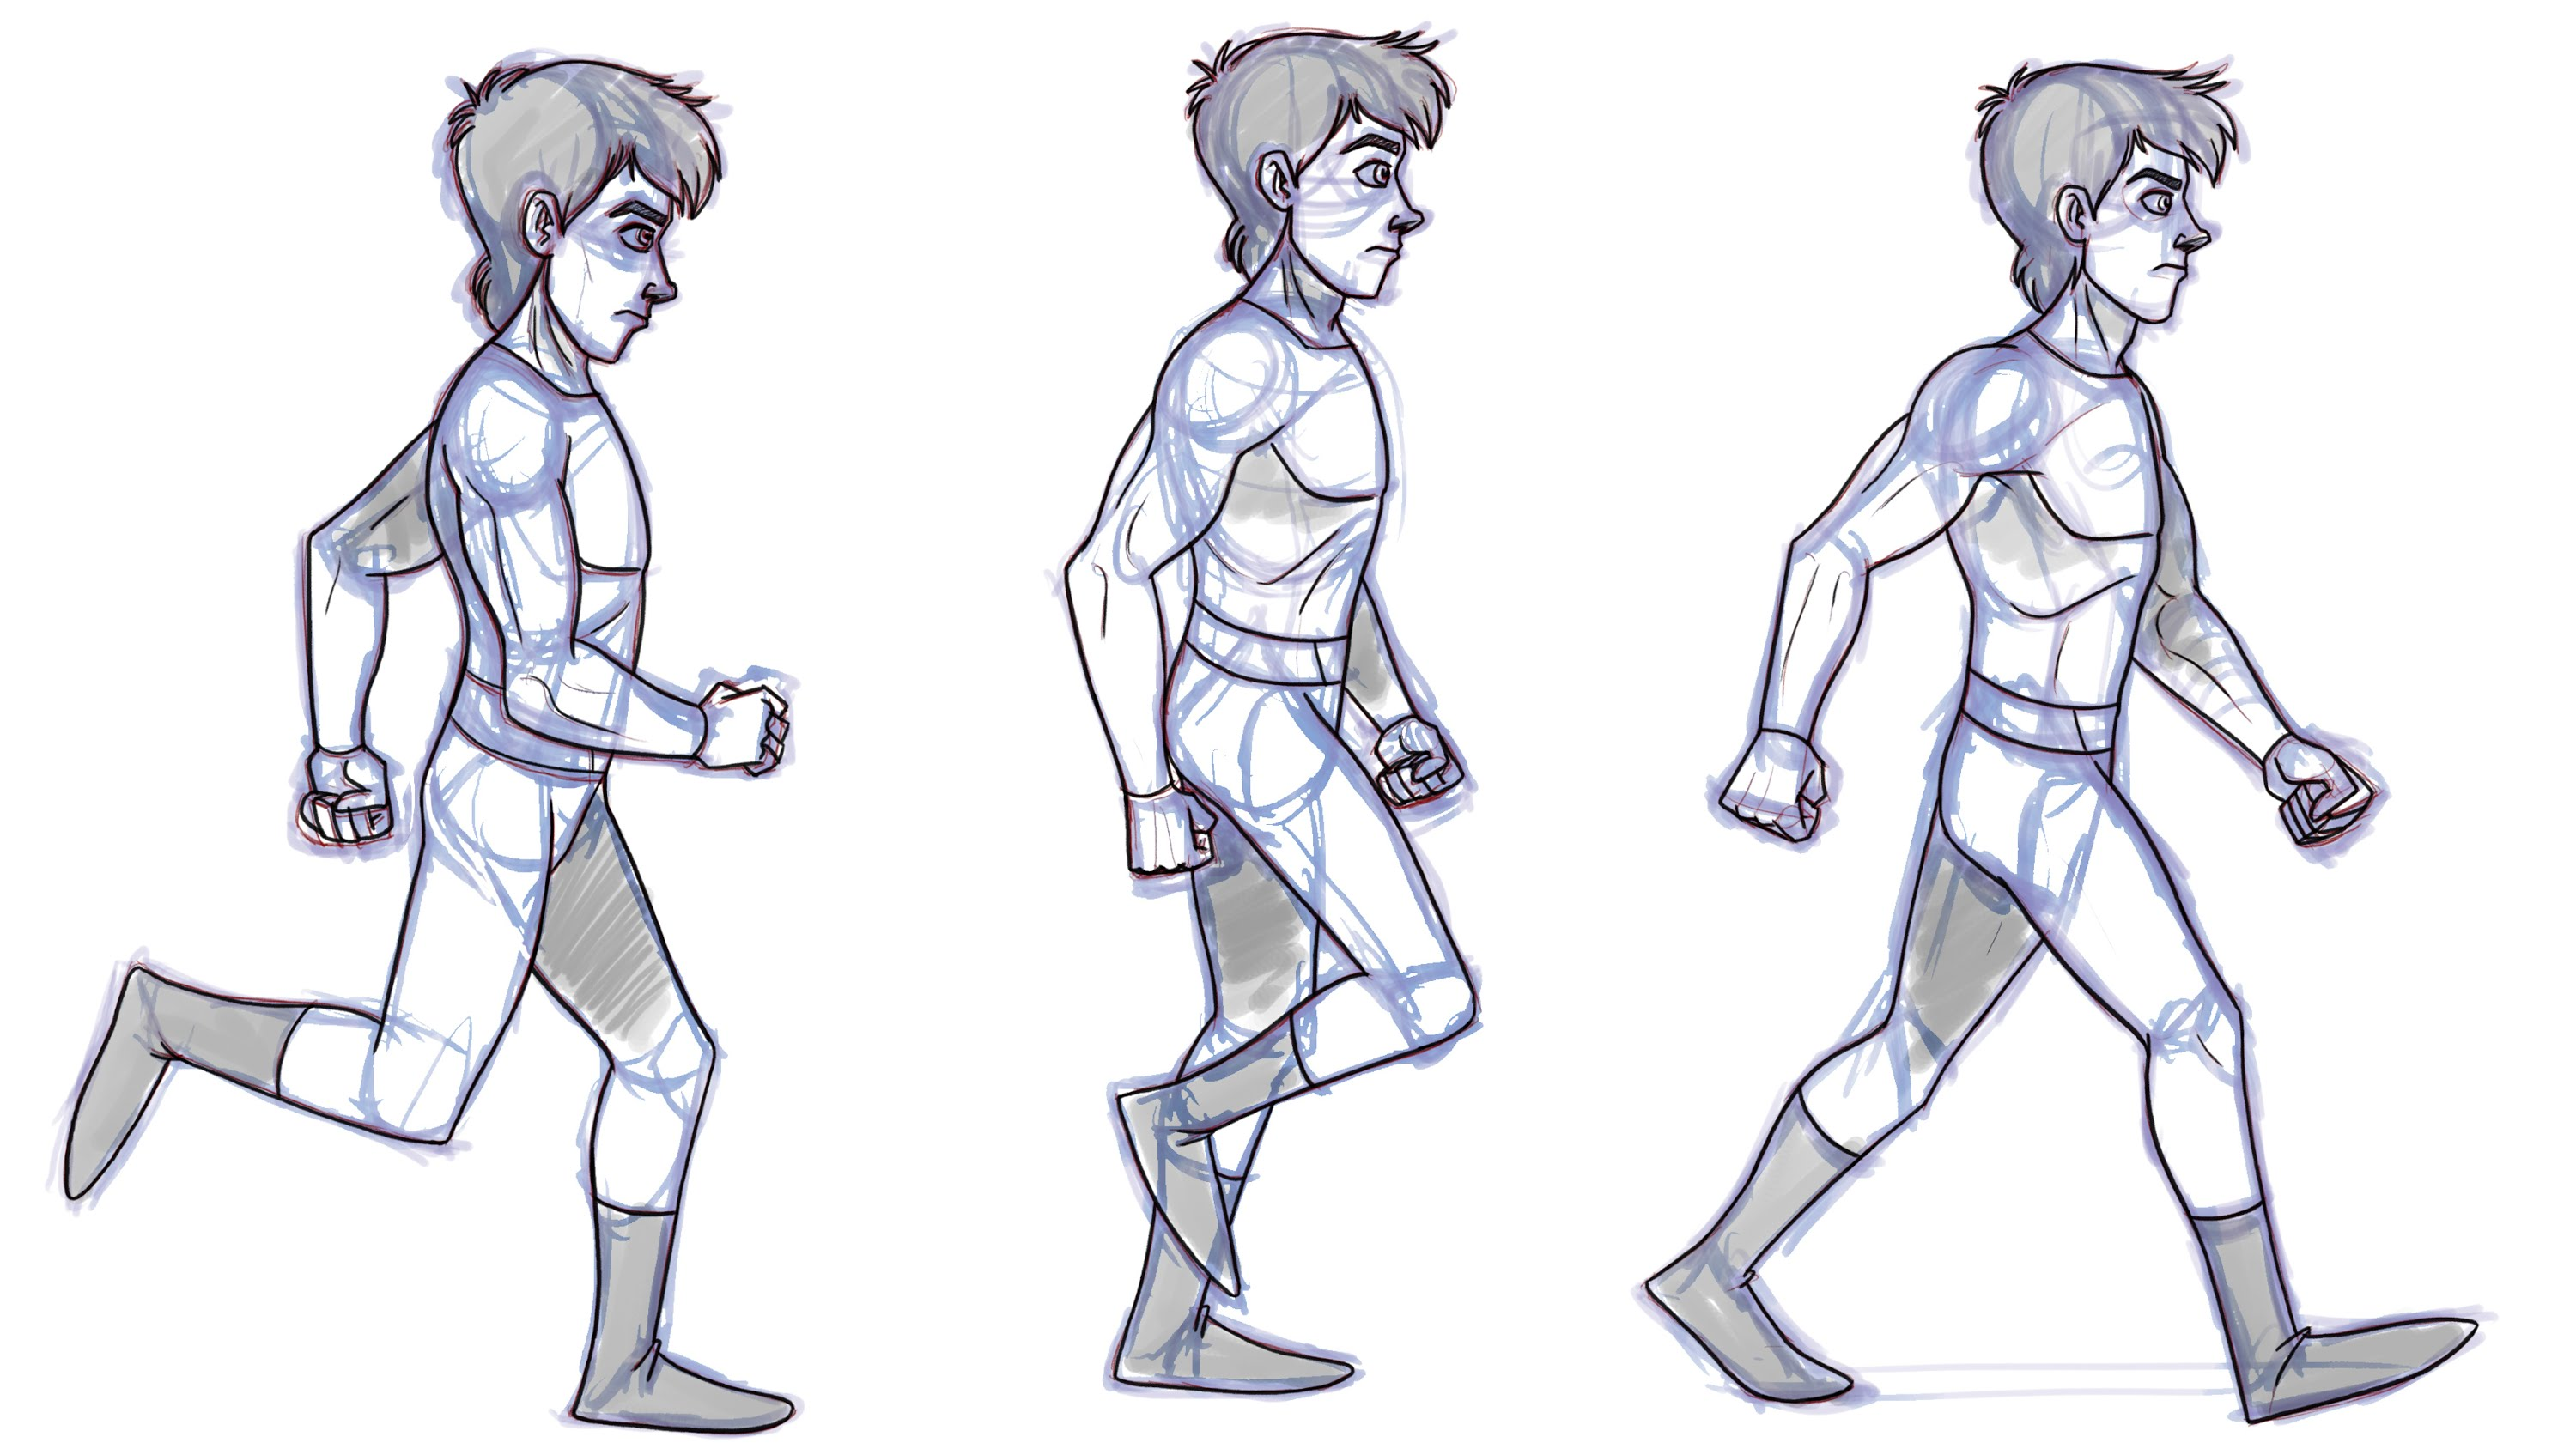 2d Animation Character Design Tutorial : Walking man drawing cliparts